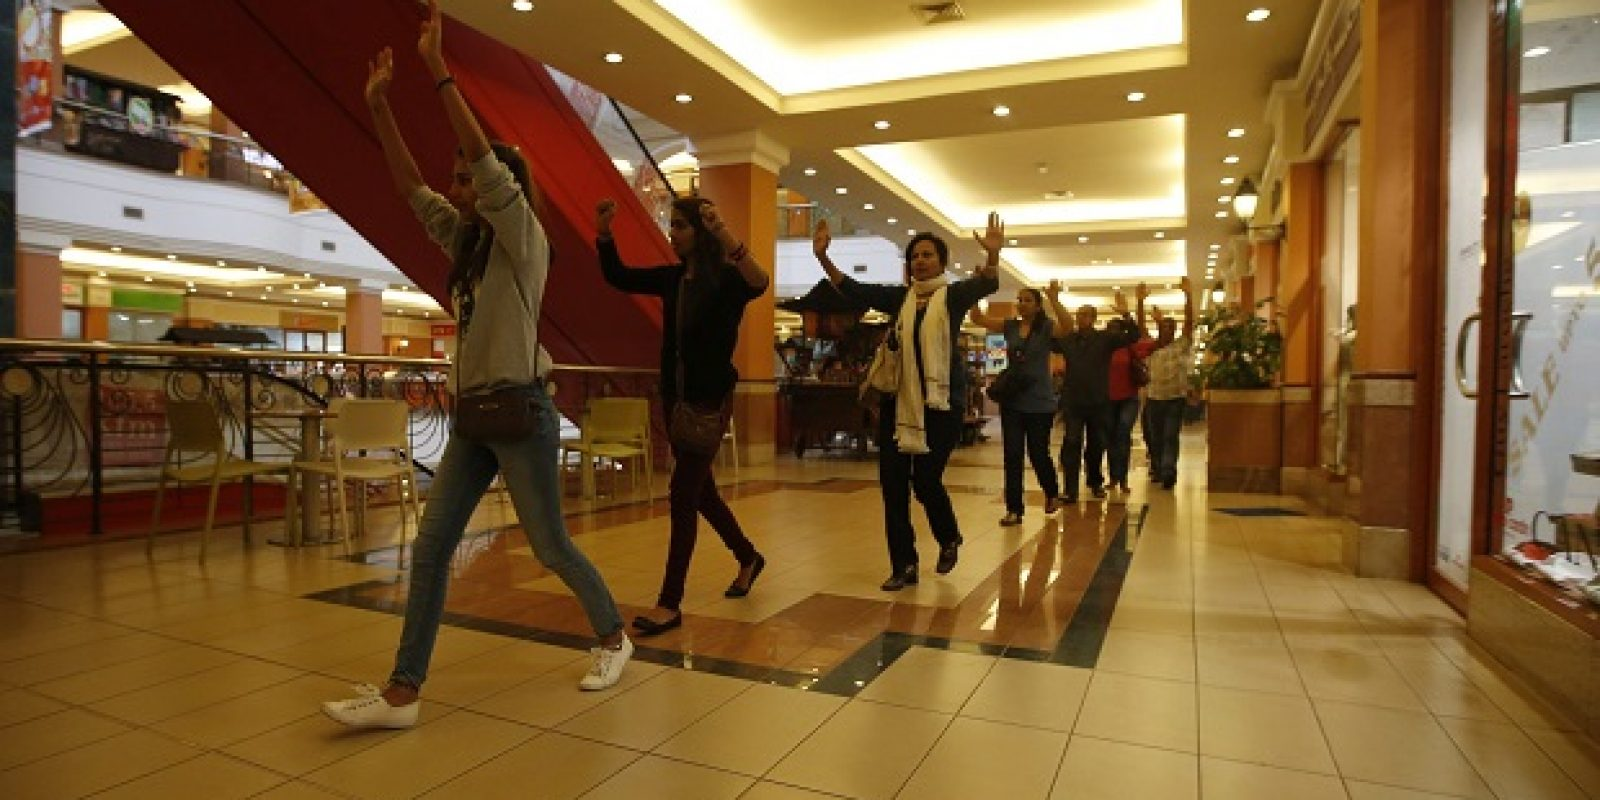 Shoppers and shop assistants raise their hands as they are escorted to safety while armed police hunt gunmen who went on a shooting spree in Westgate shopping centre in Nairobi. Imagen Por: Shoppers and shop assistants raise their hands as they are escorted to safety while armed police hunt gunmen who went on a shooting spree in Westgate shopping centre in Nairobi September 21, 2013. The gunmen stormed the shopping mall in Nairobi on Saturday killing at least 20 people in what Kenya